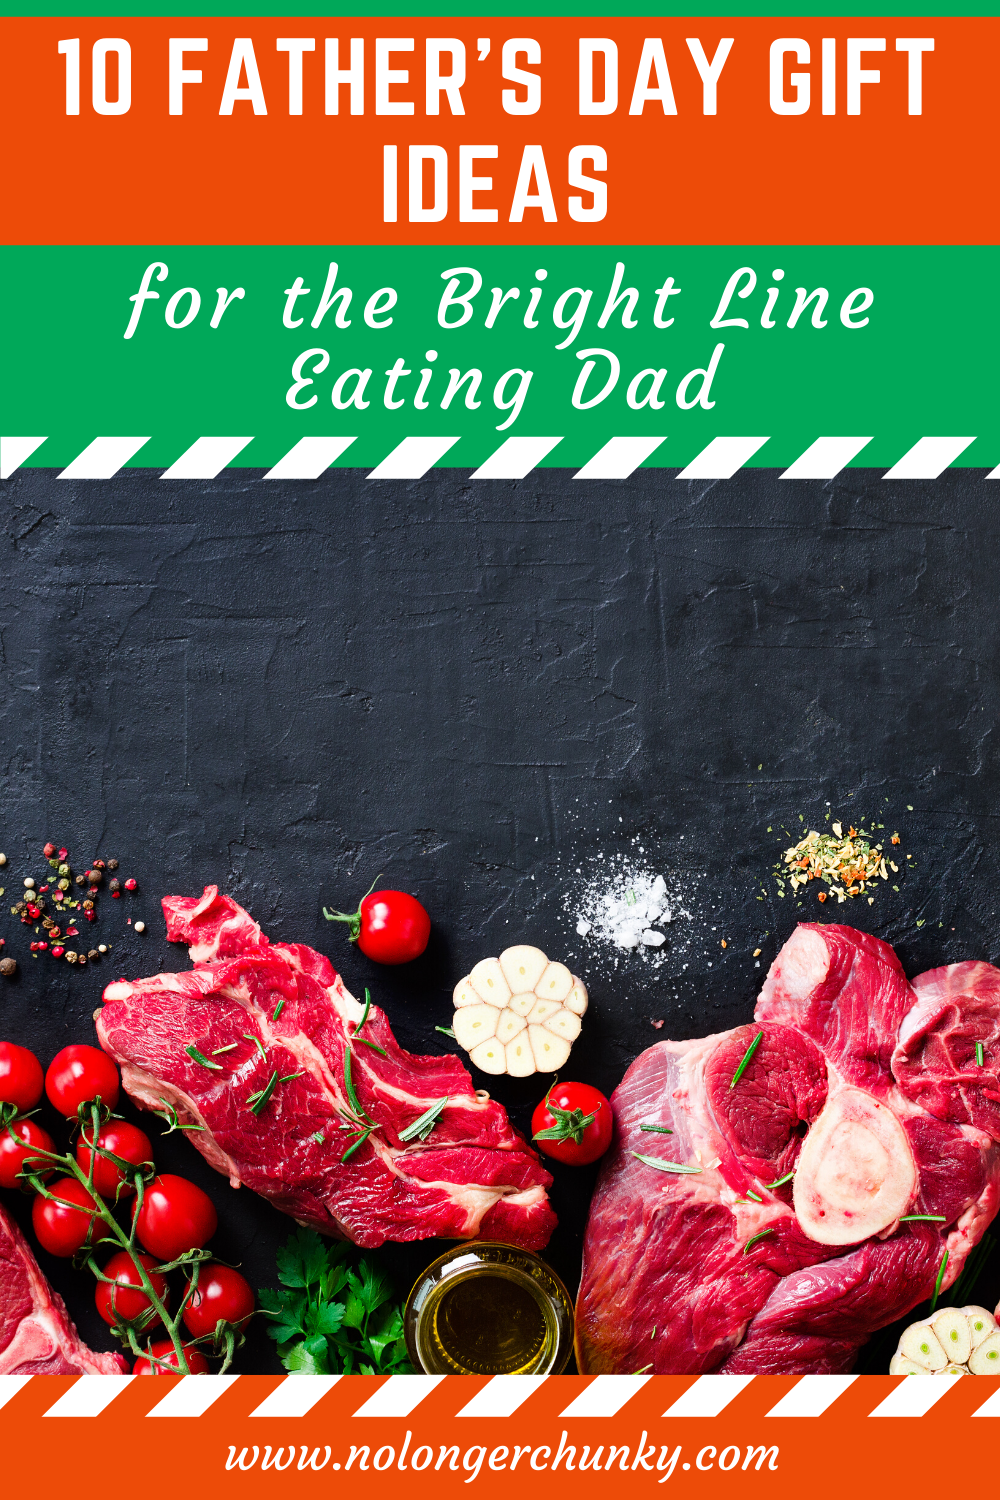 Bright Line Eating Father's Day Gift Ideas 1